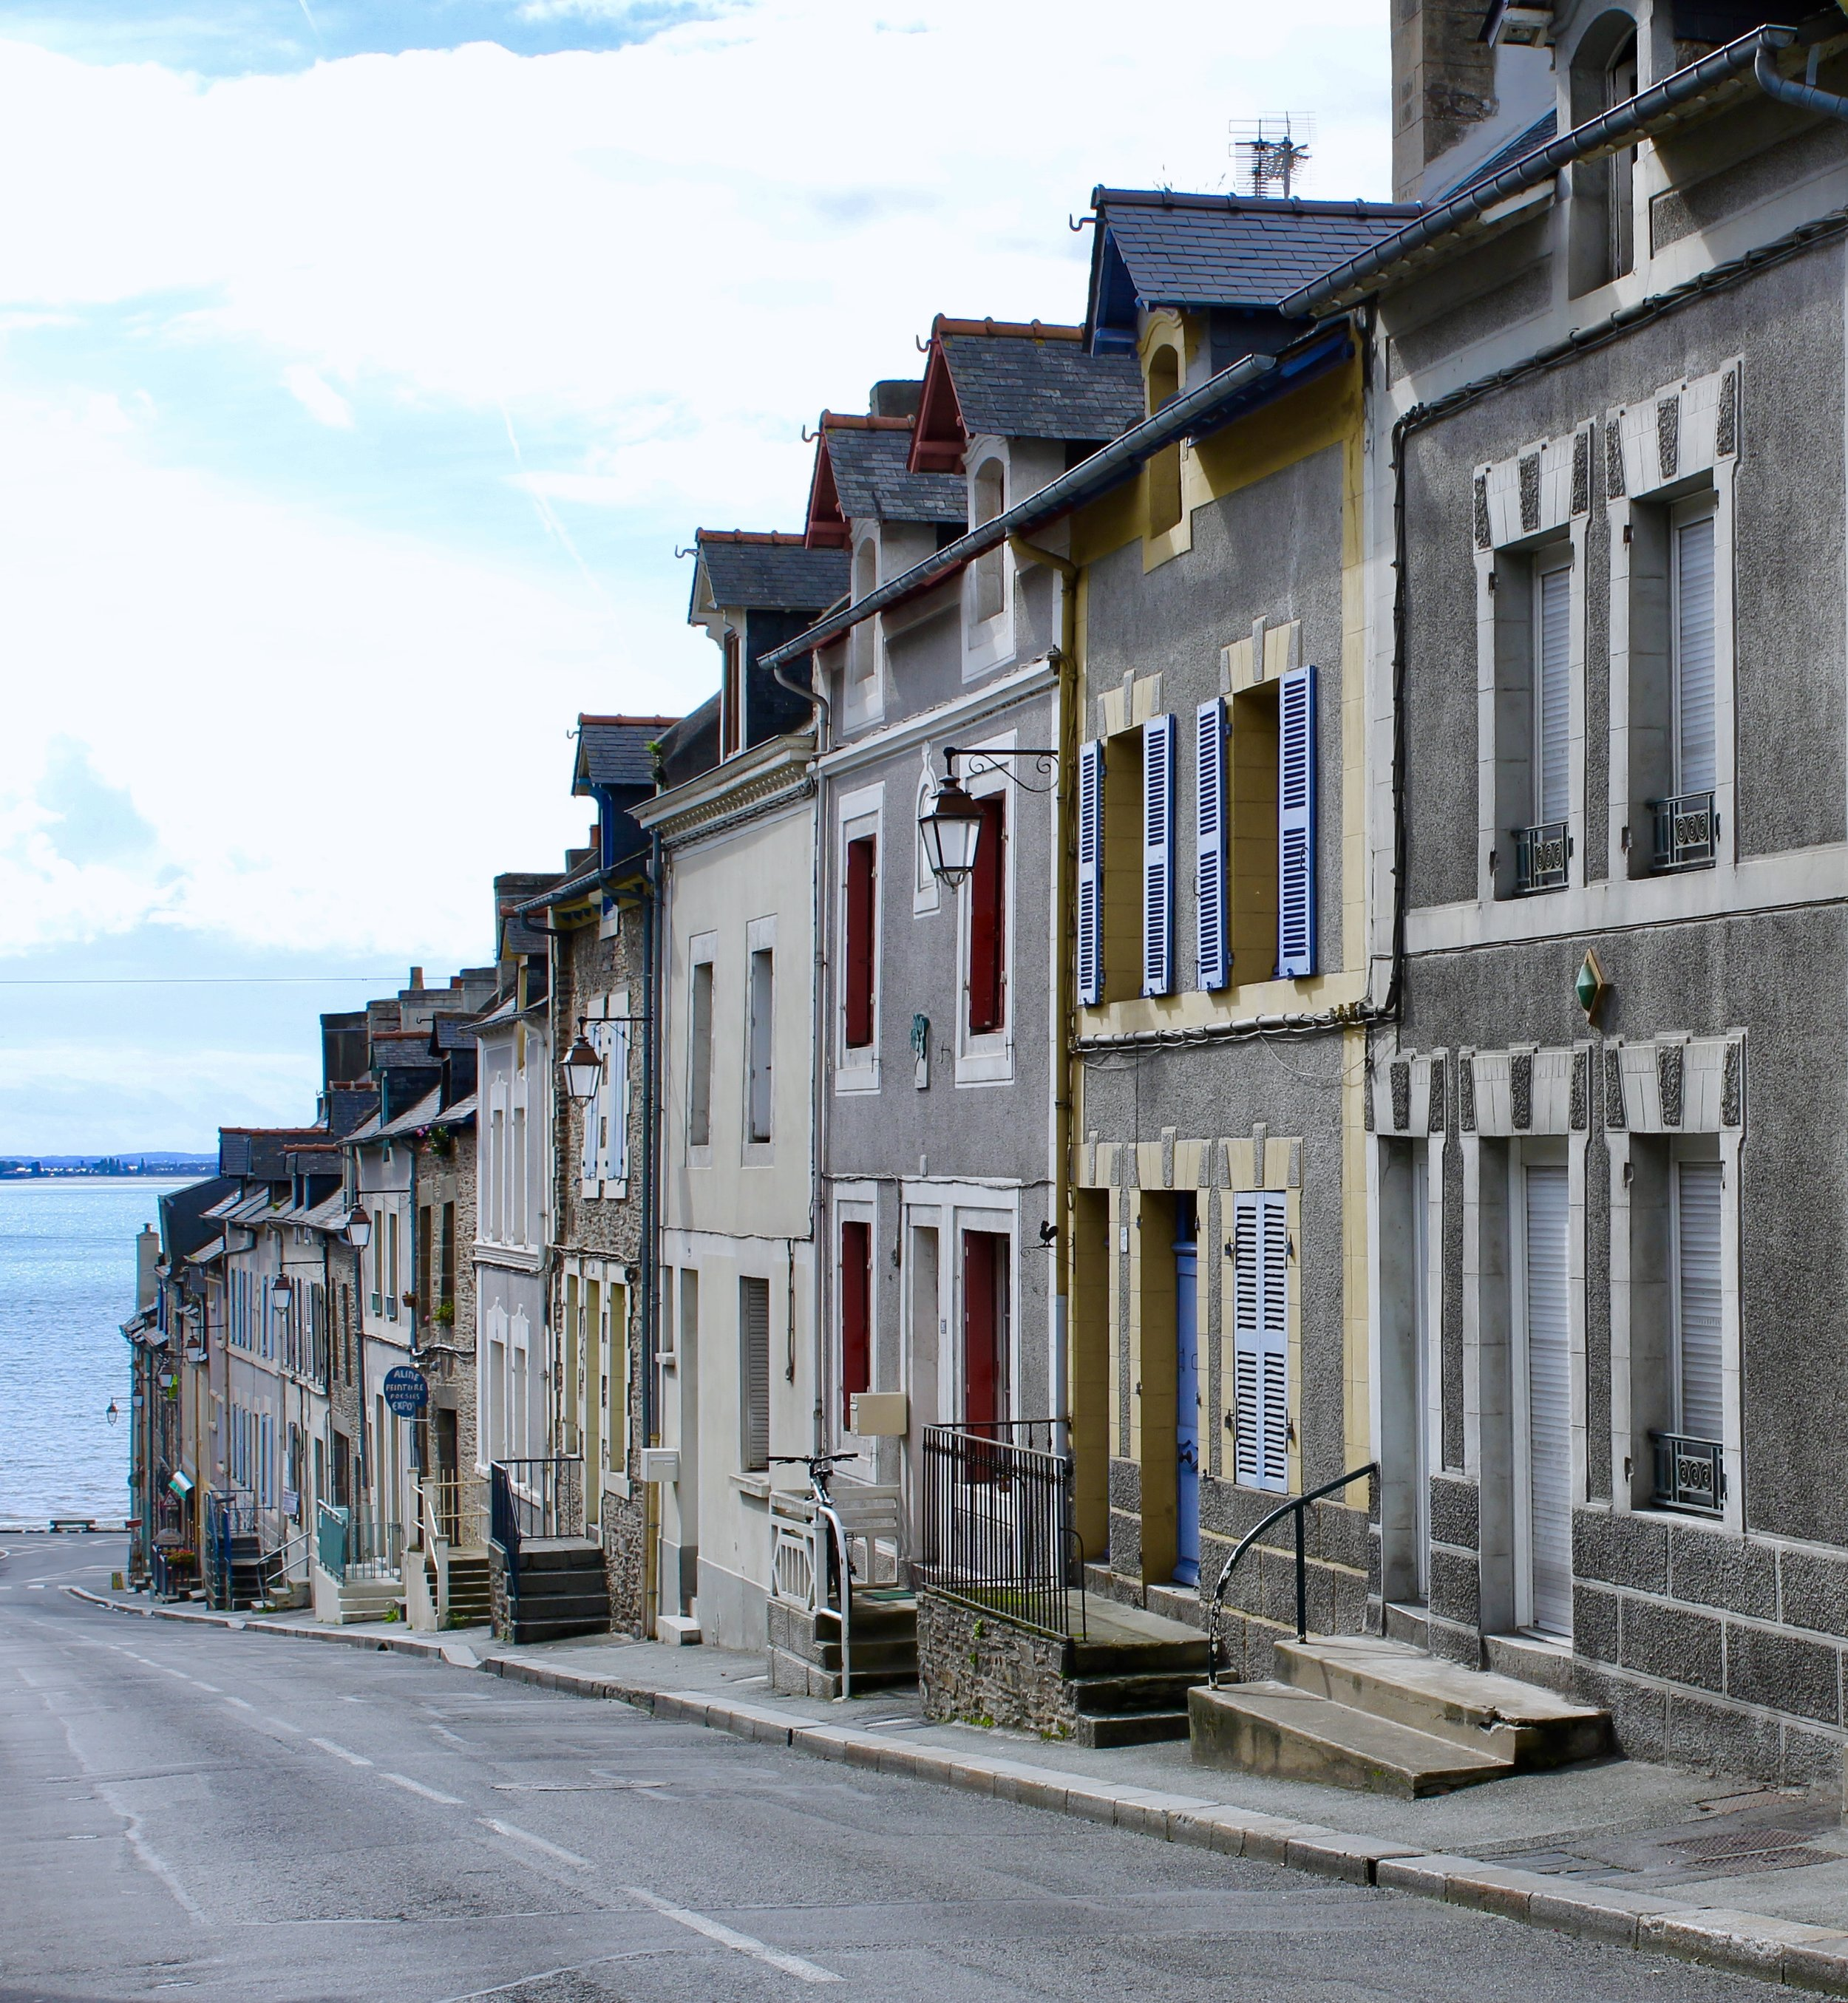 Streets of Cancale